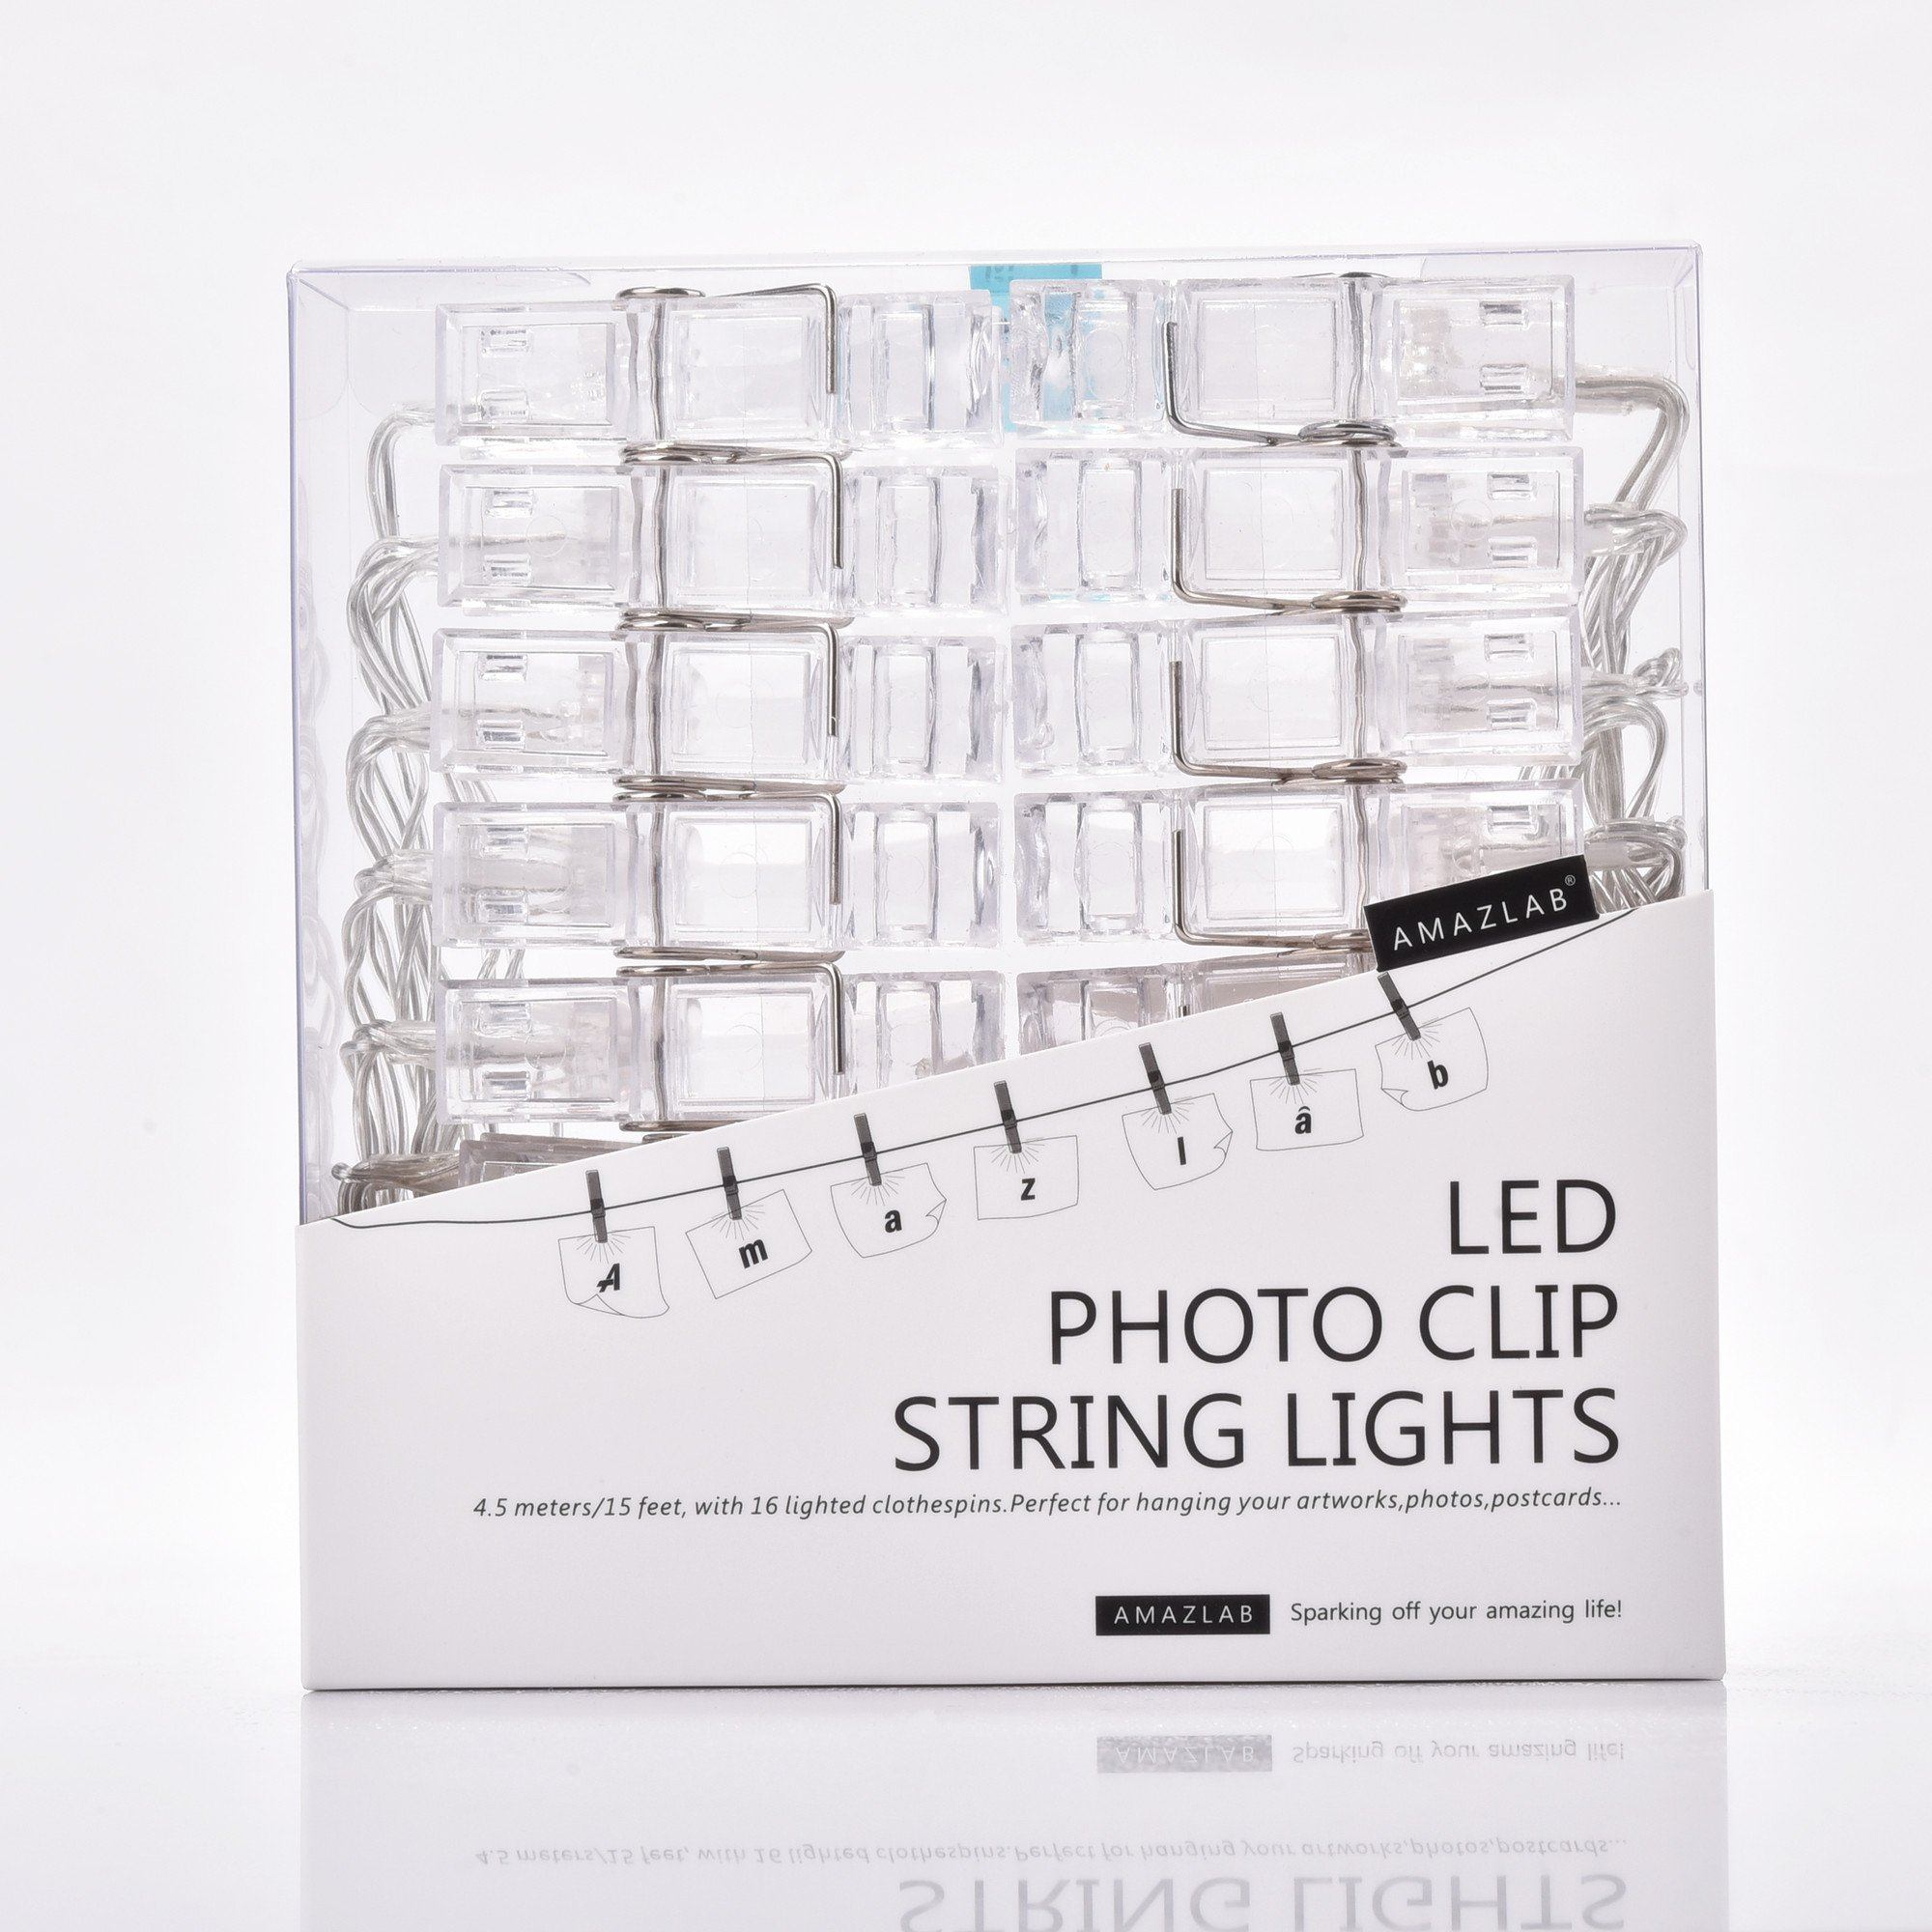 Back To School Amazlab T2CU LED Photo Clips String Lights, 16 Photo Clips, 15 Feet Long, Warm White, USB Powered, Perfect for Hanging Pictures, Notes, Artwork.